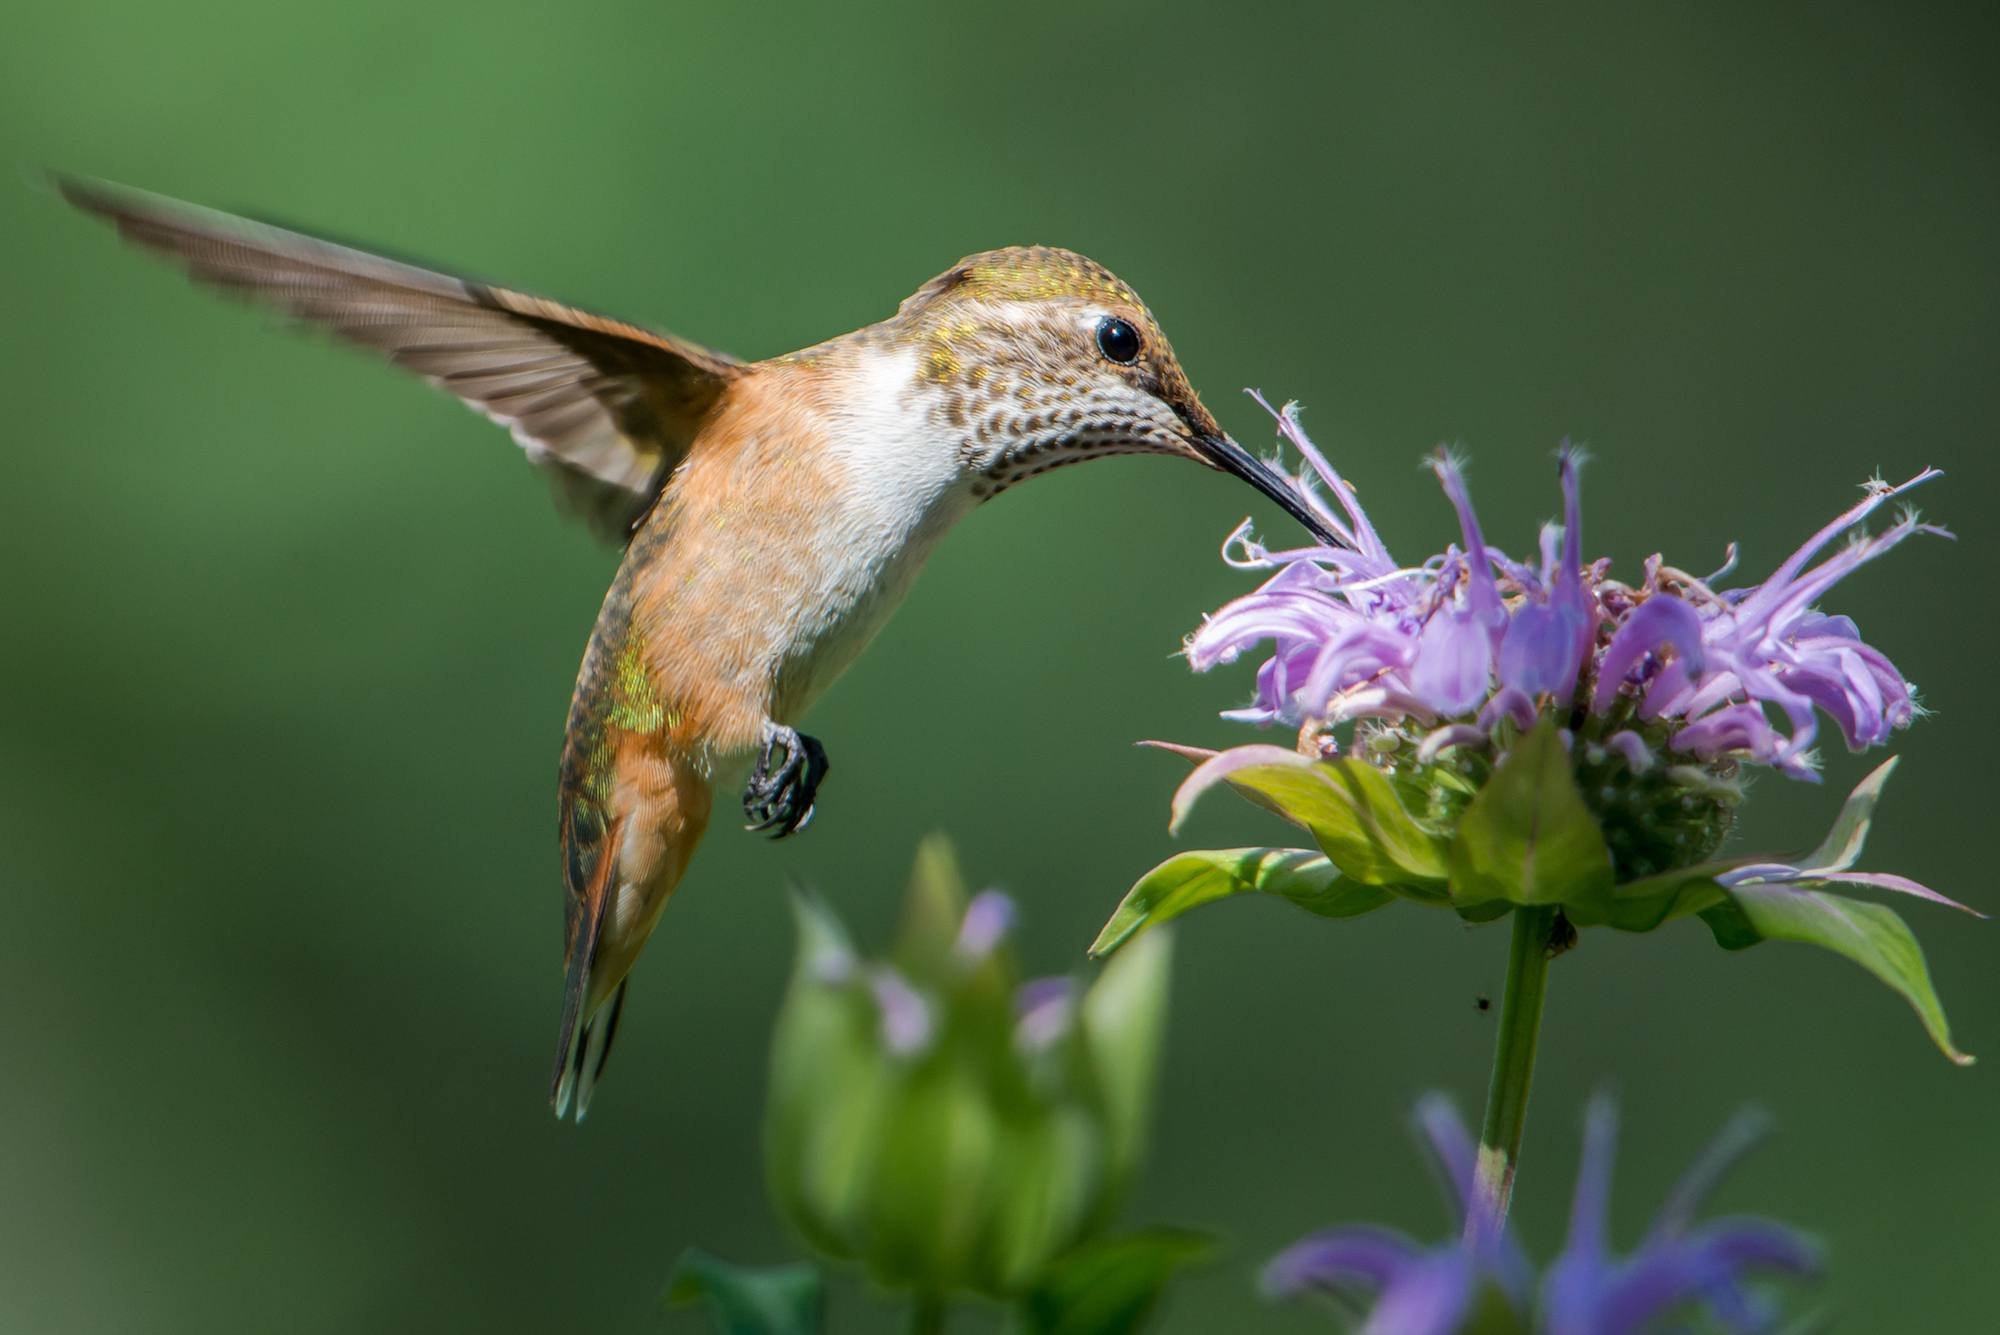 A female broad-tailed hummingbird feeding on some Monarda flowers.